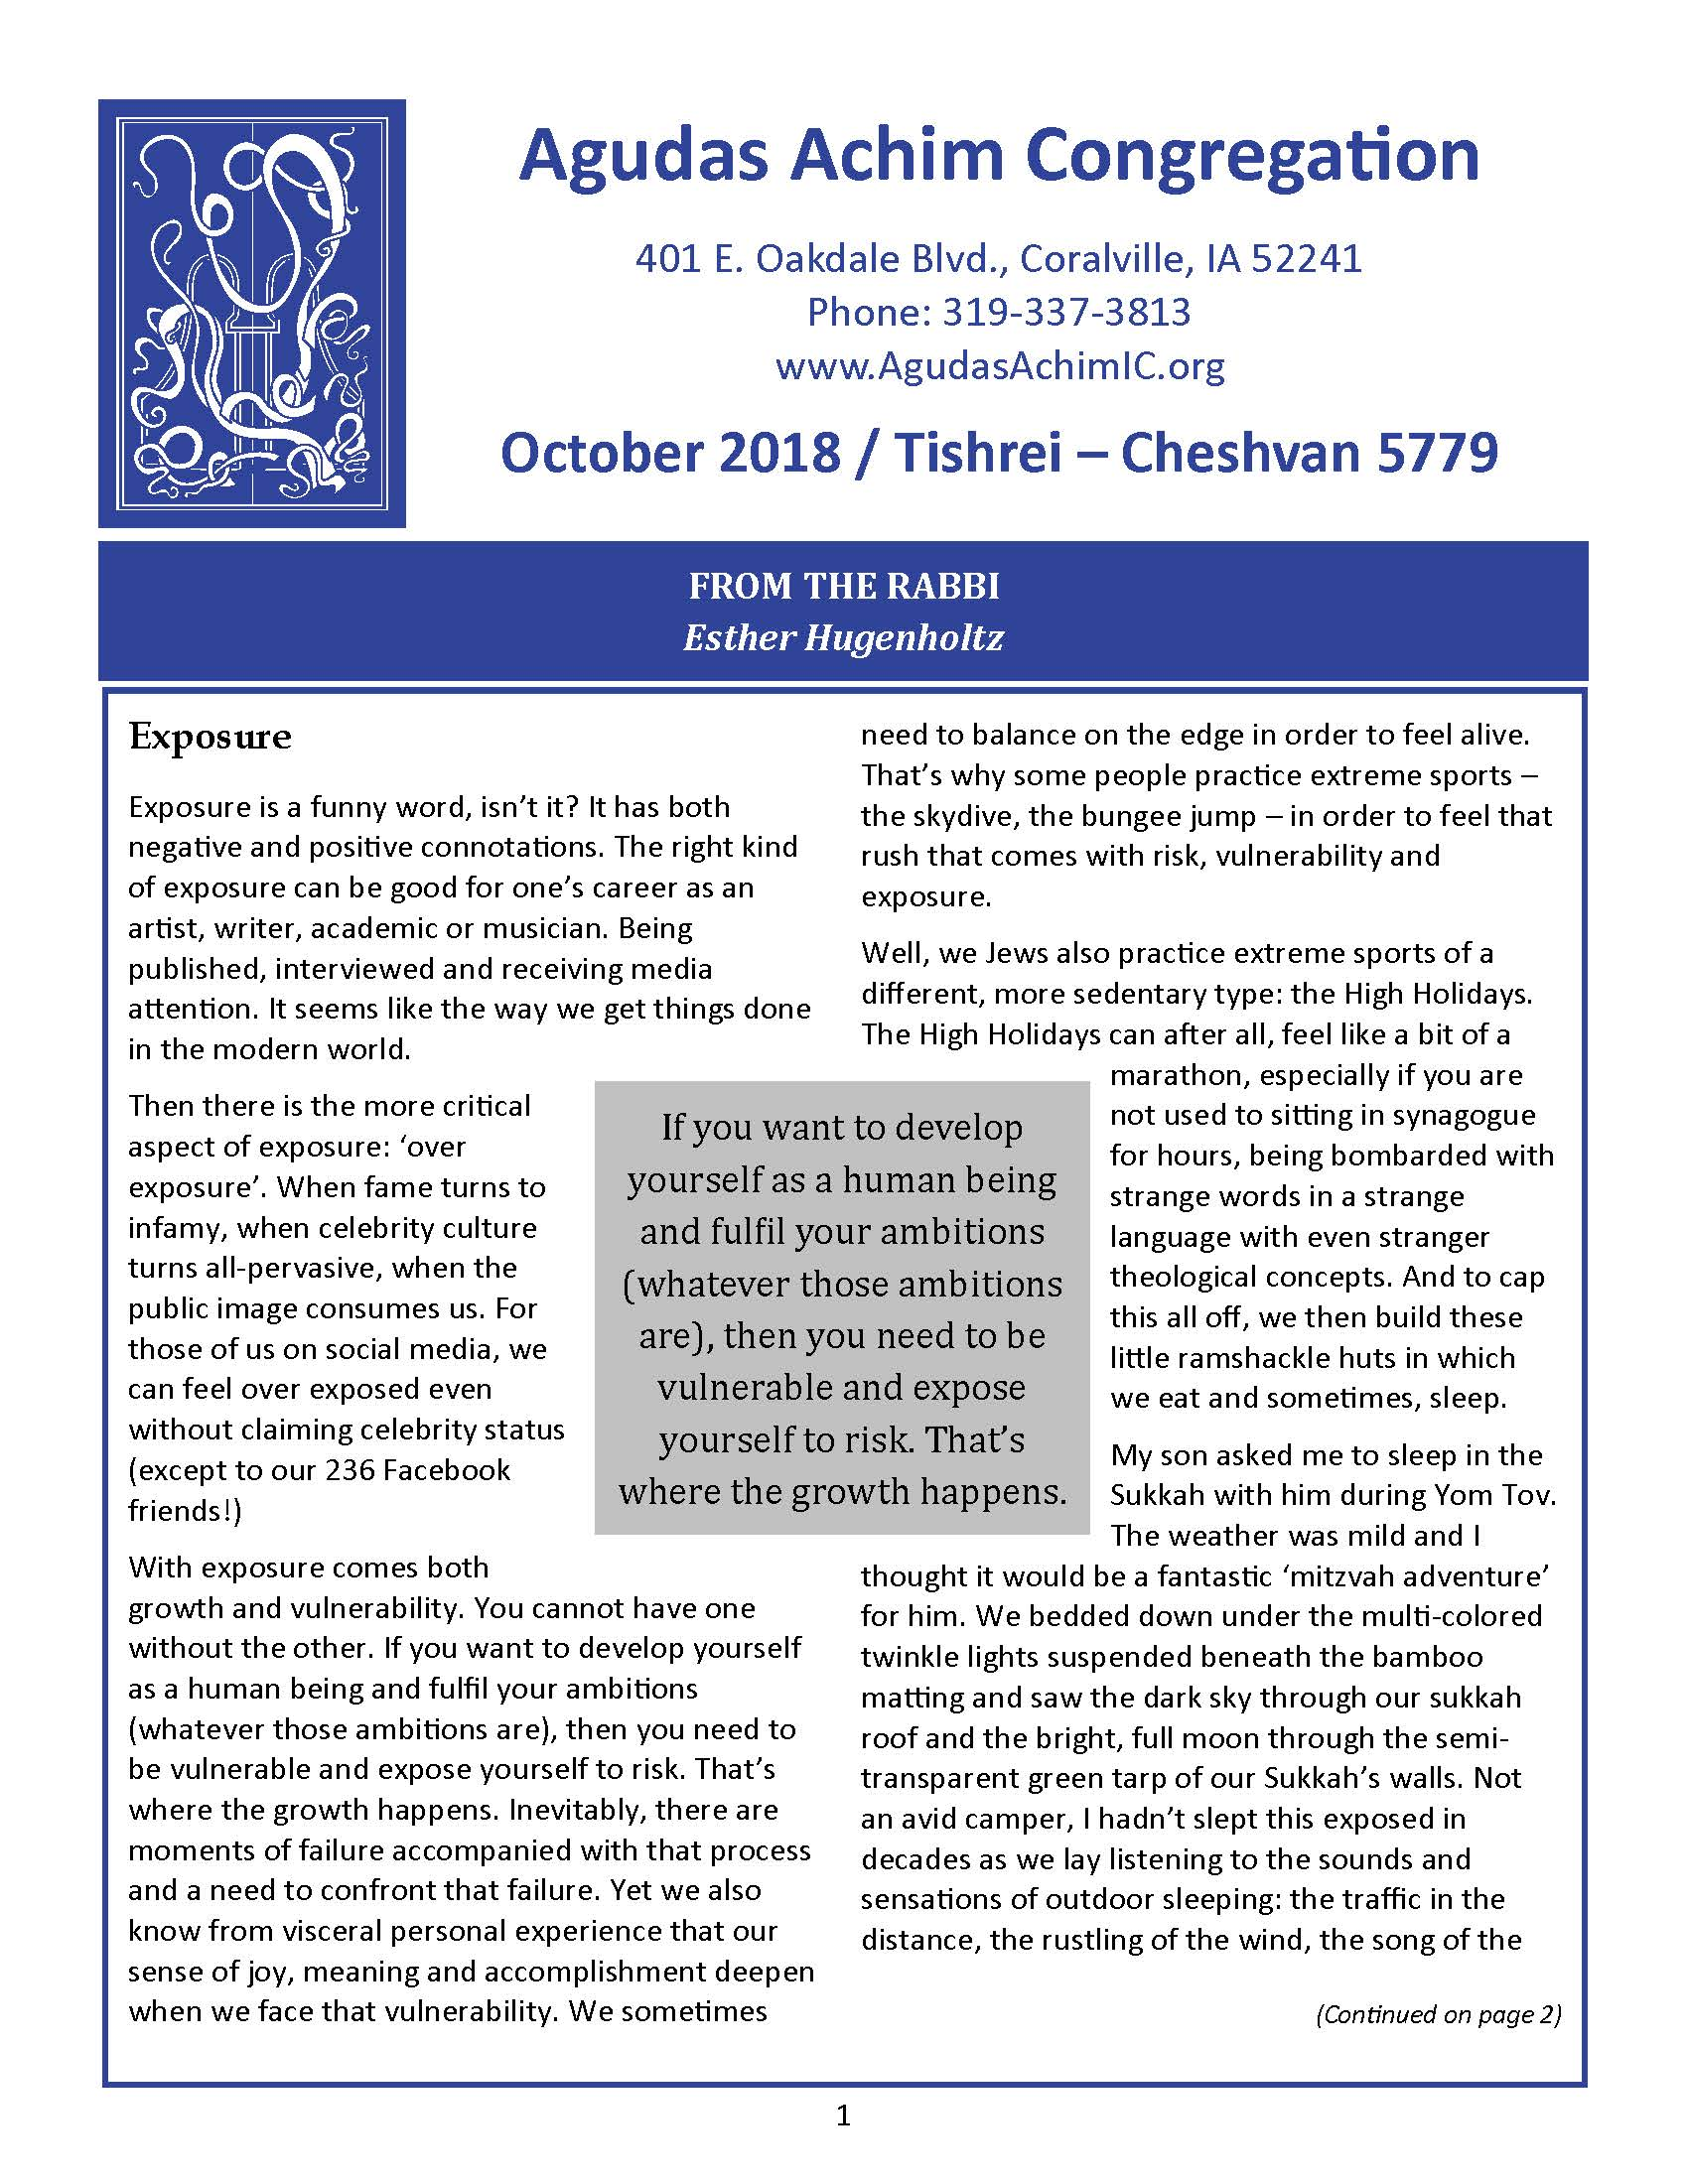 October 2018 News Bulletin